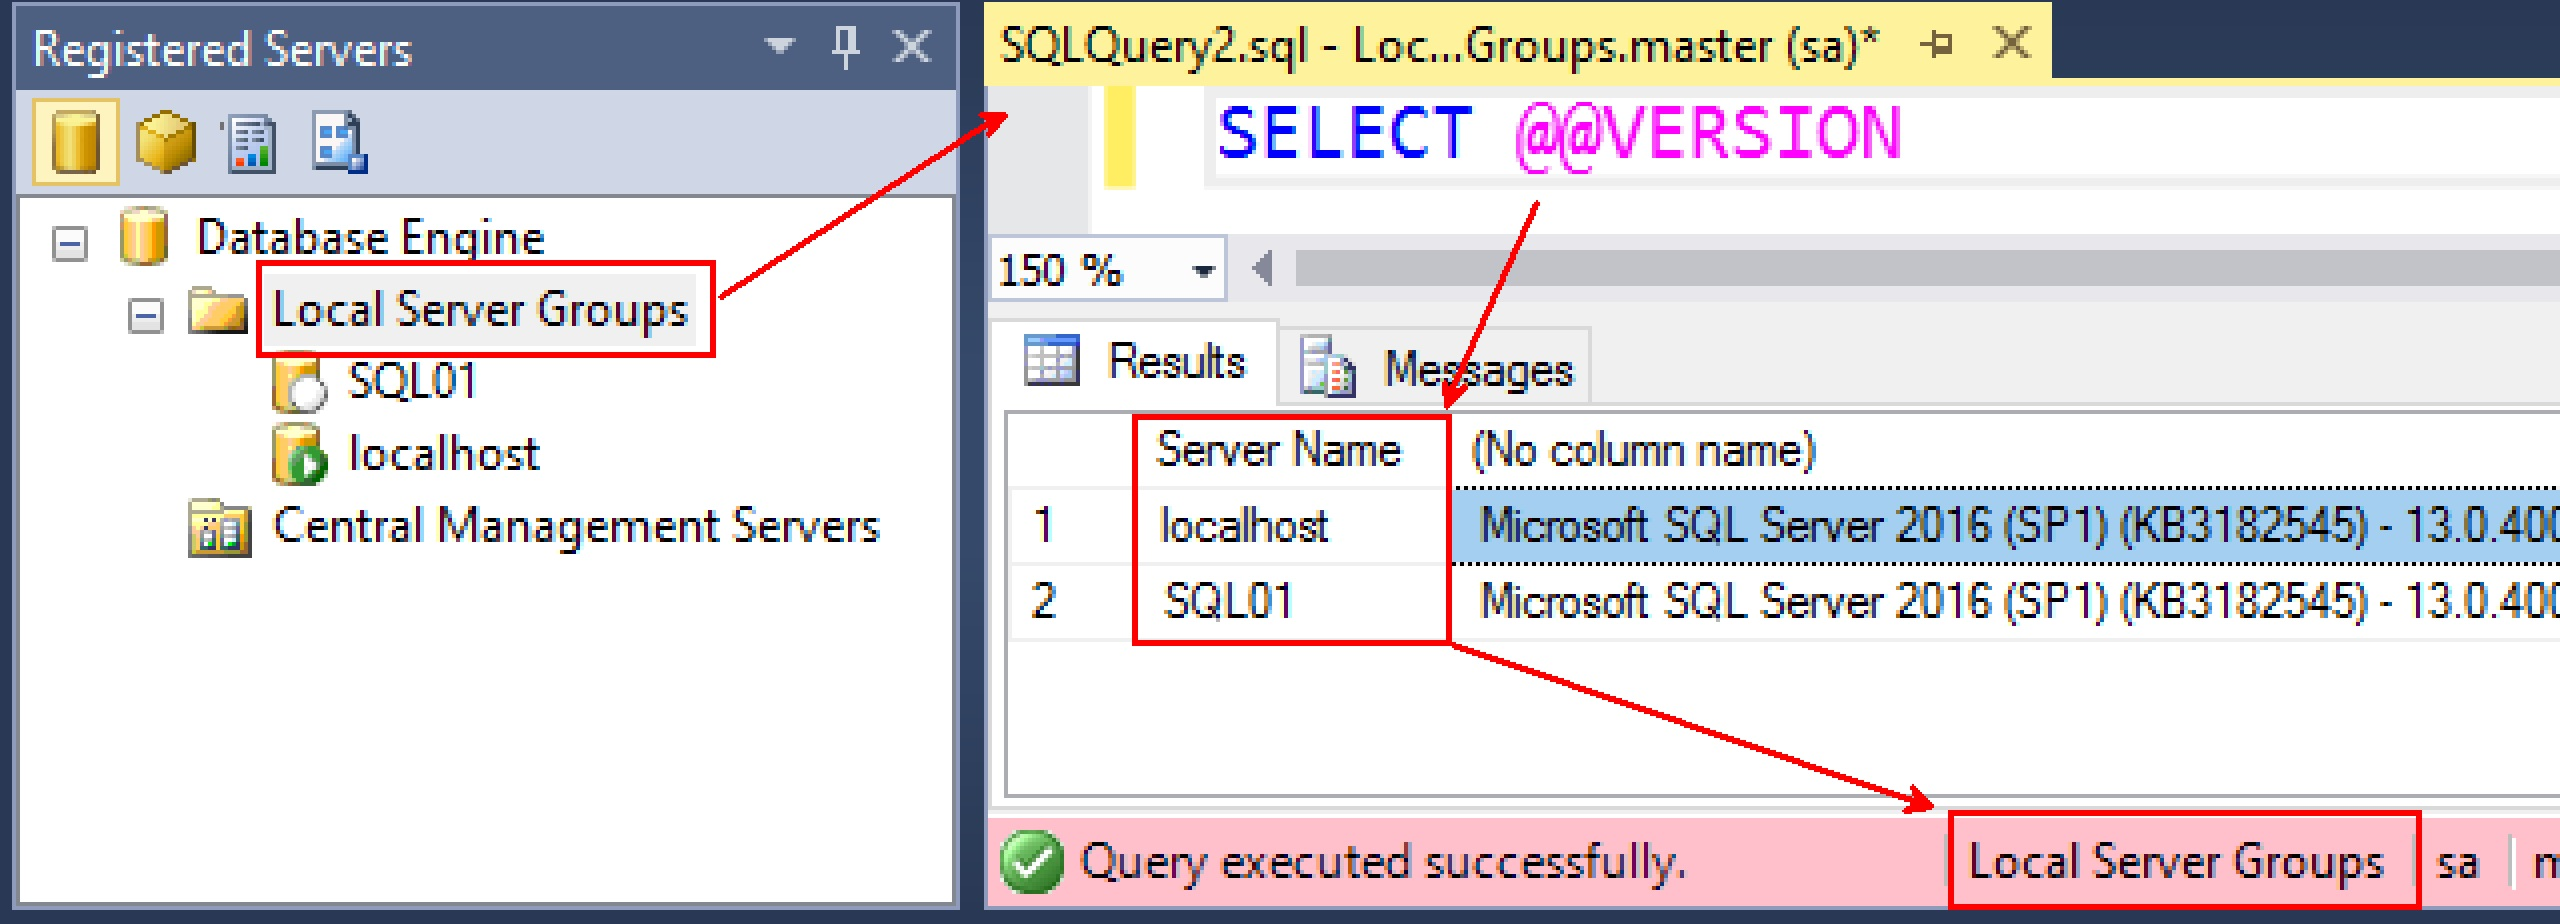 how to query multiple sql server a single query interview how to query multiple sql server a single query interview question of the